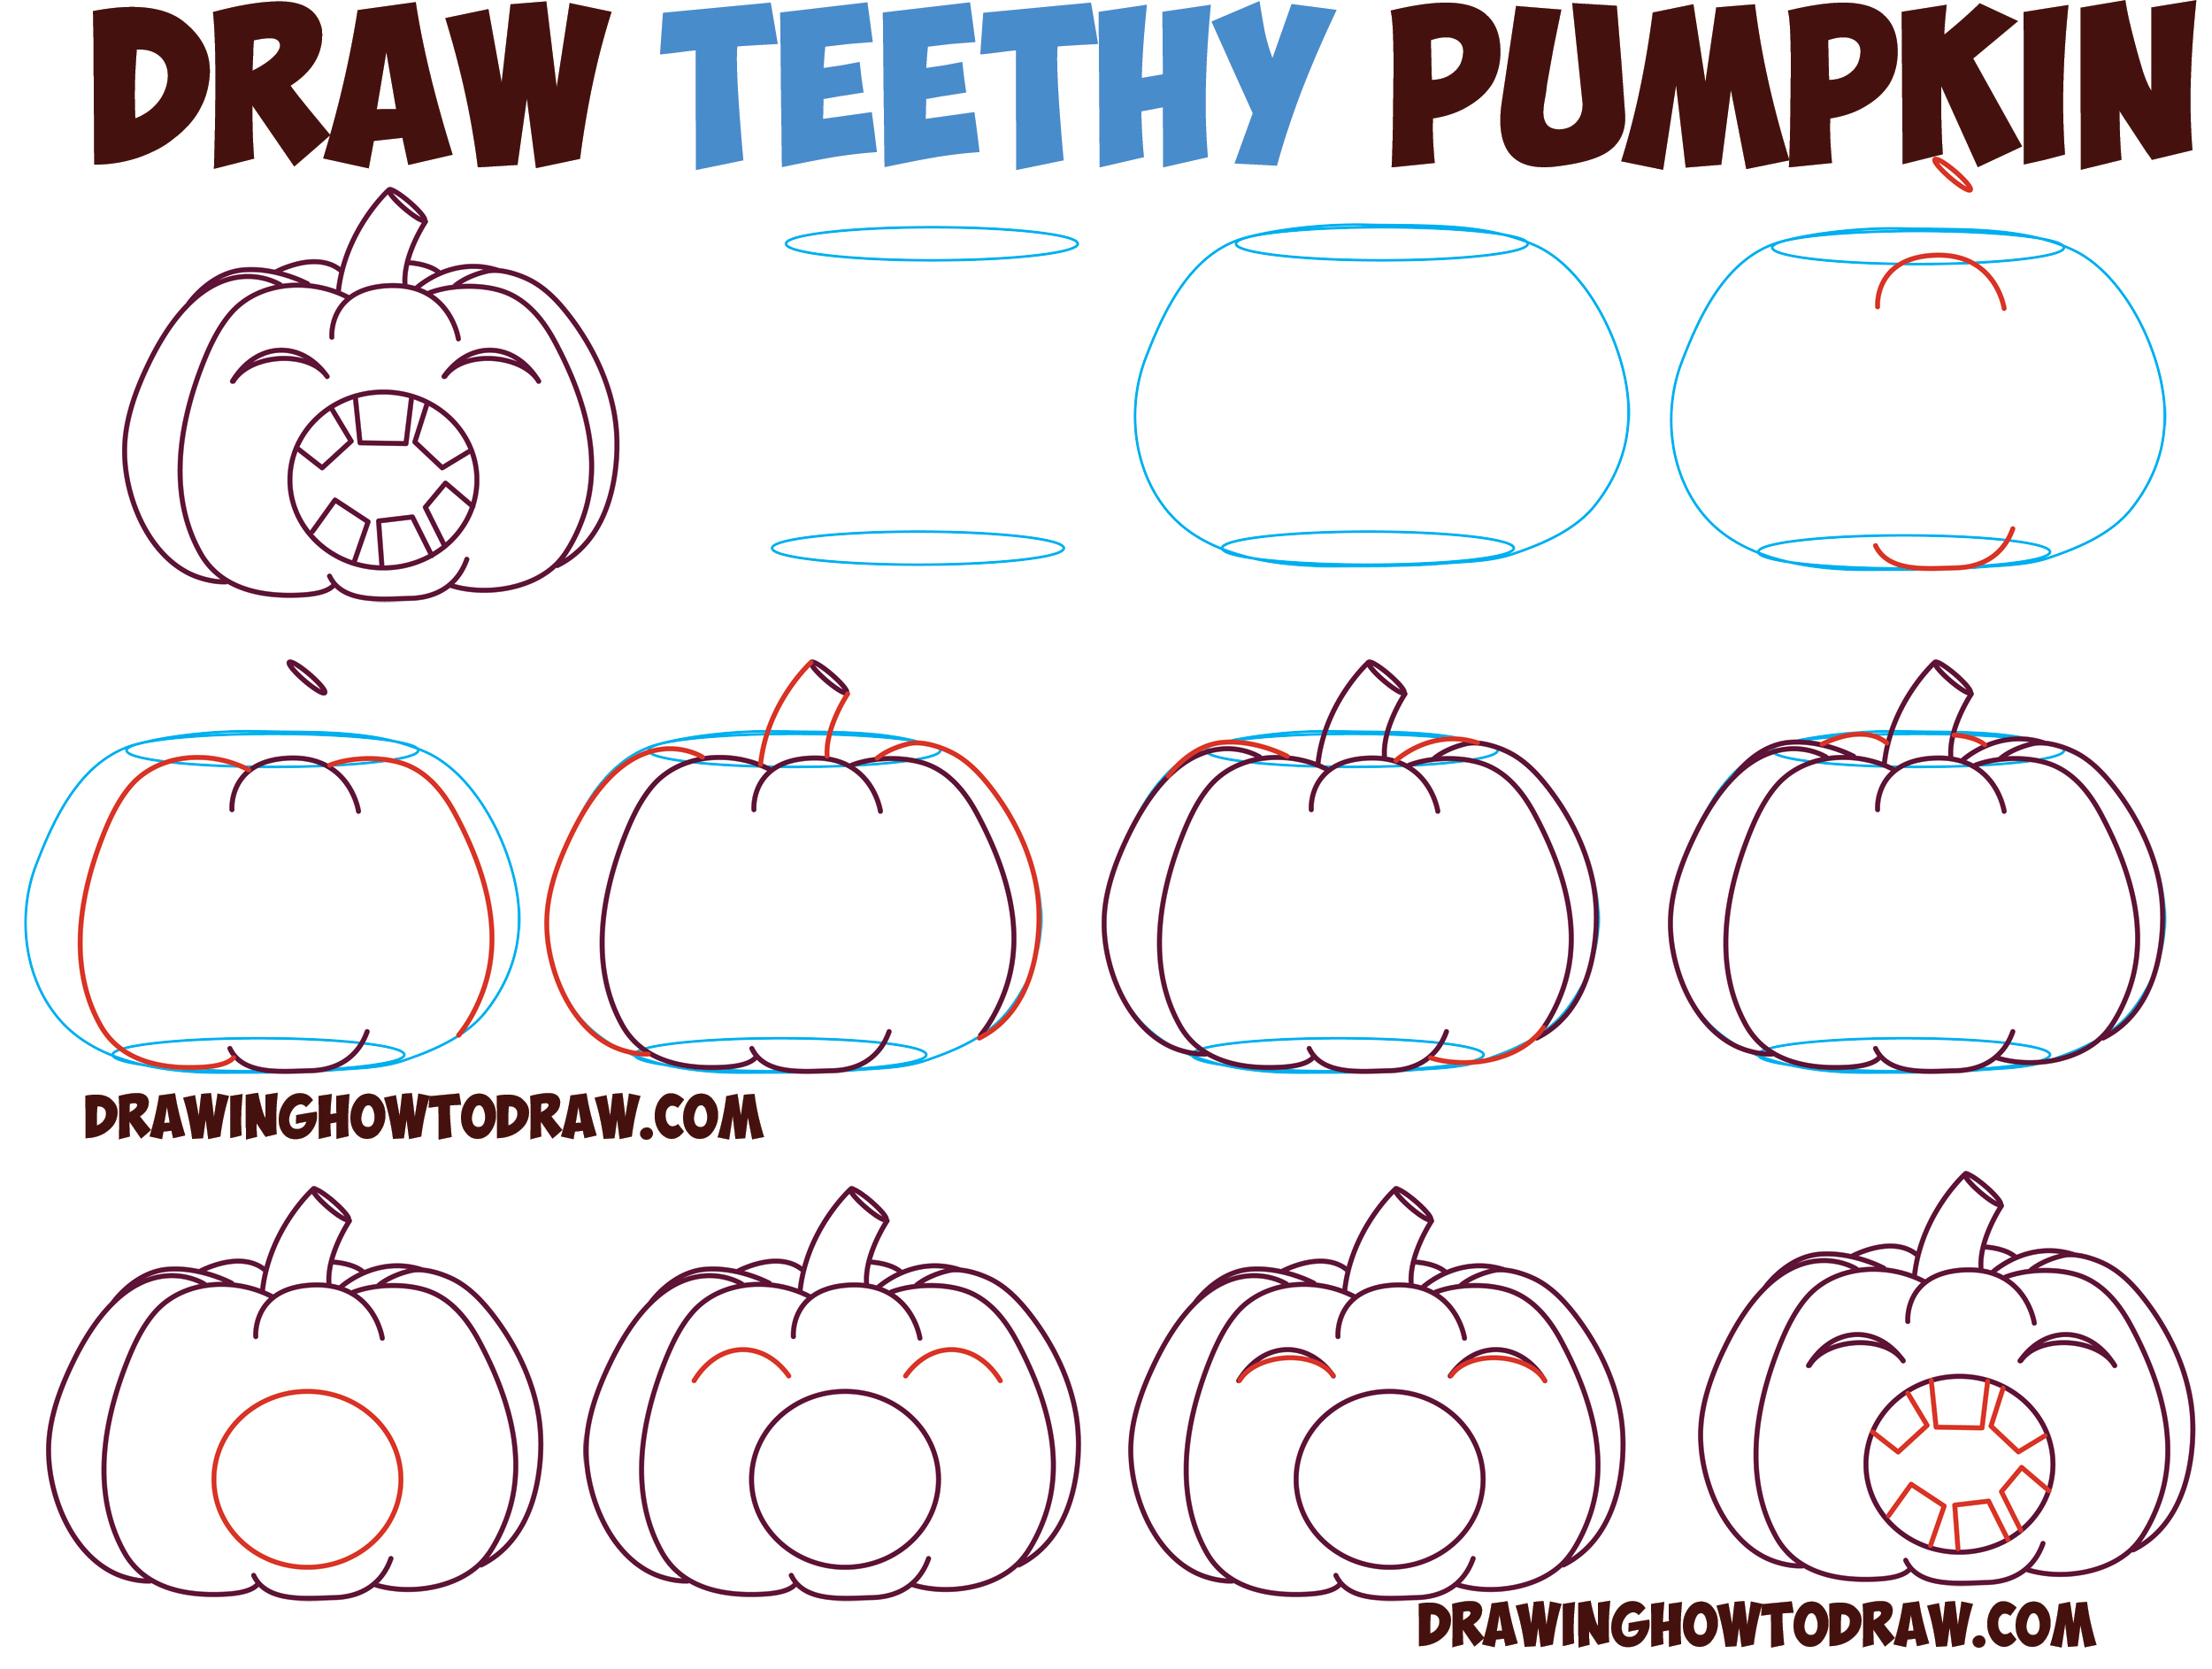 How to Draw Cartoon Pumpkin / Jack O'Lantern : Mouth Wide Open Full of Teeth